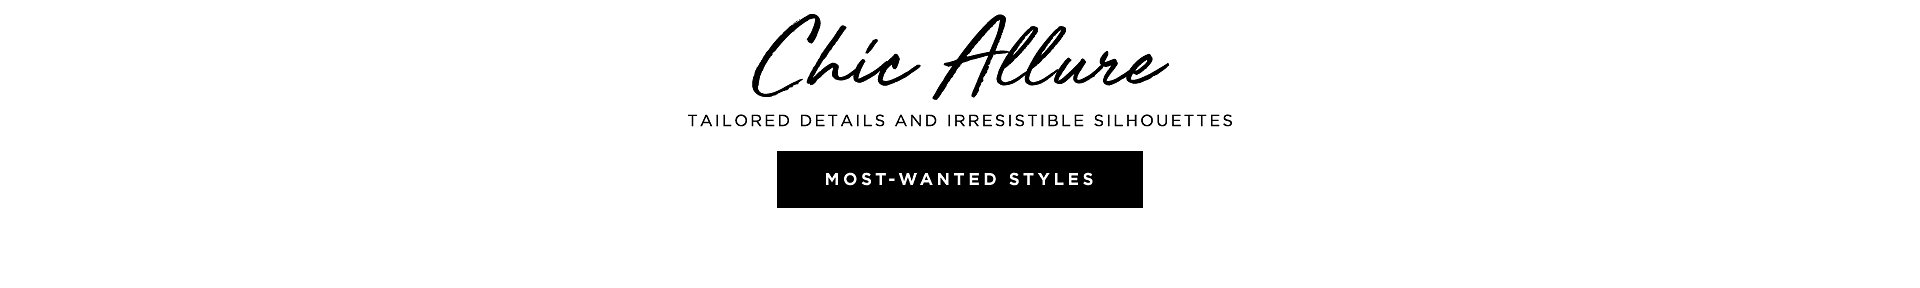 Most-Wanted Styles